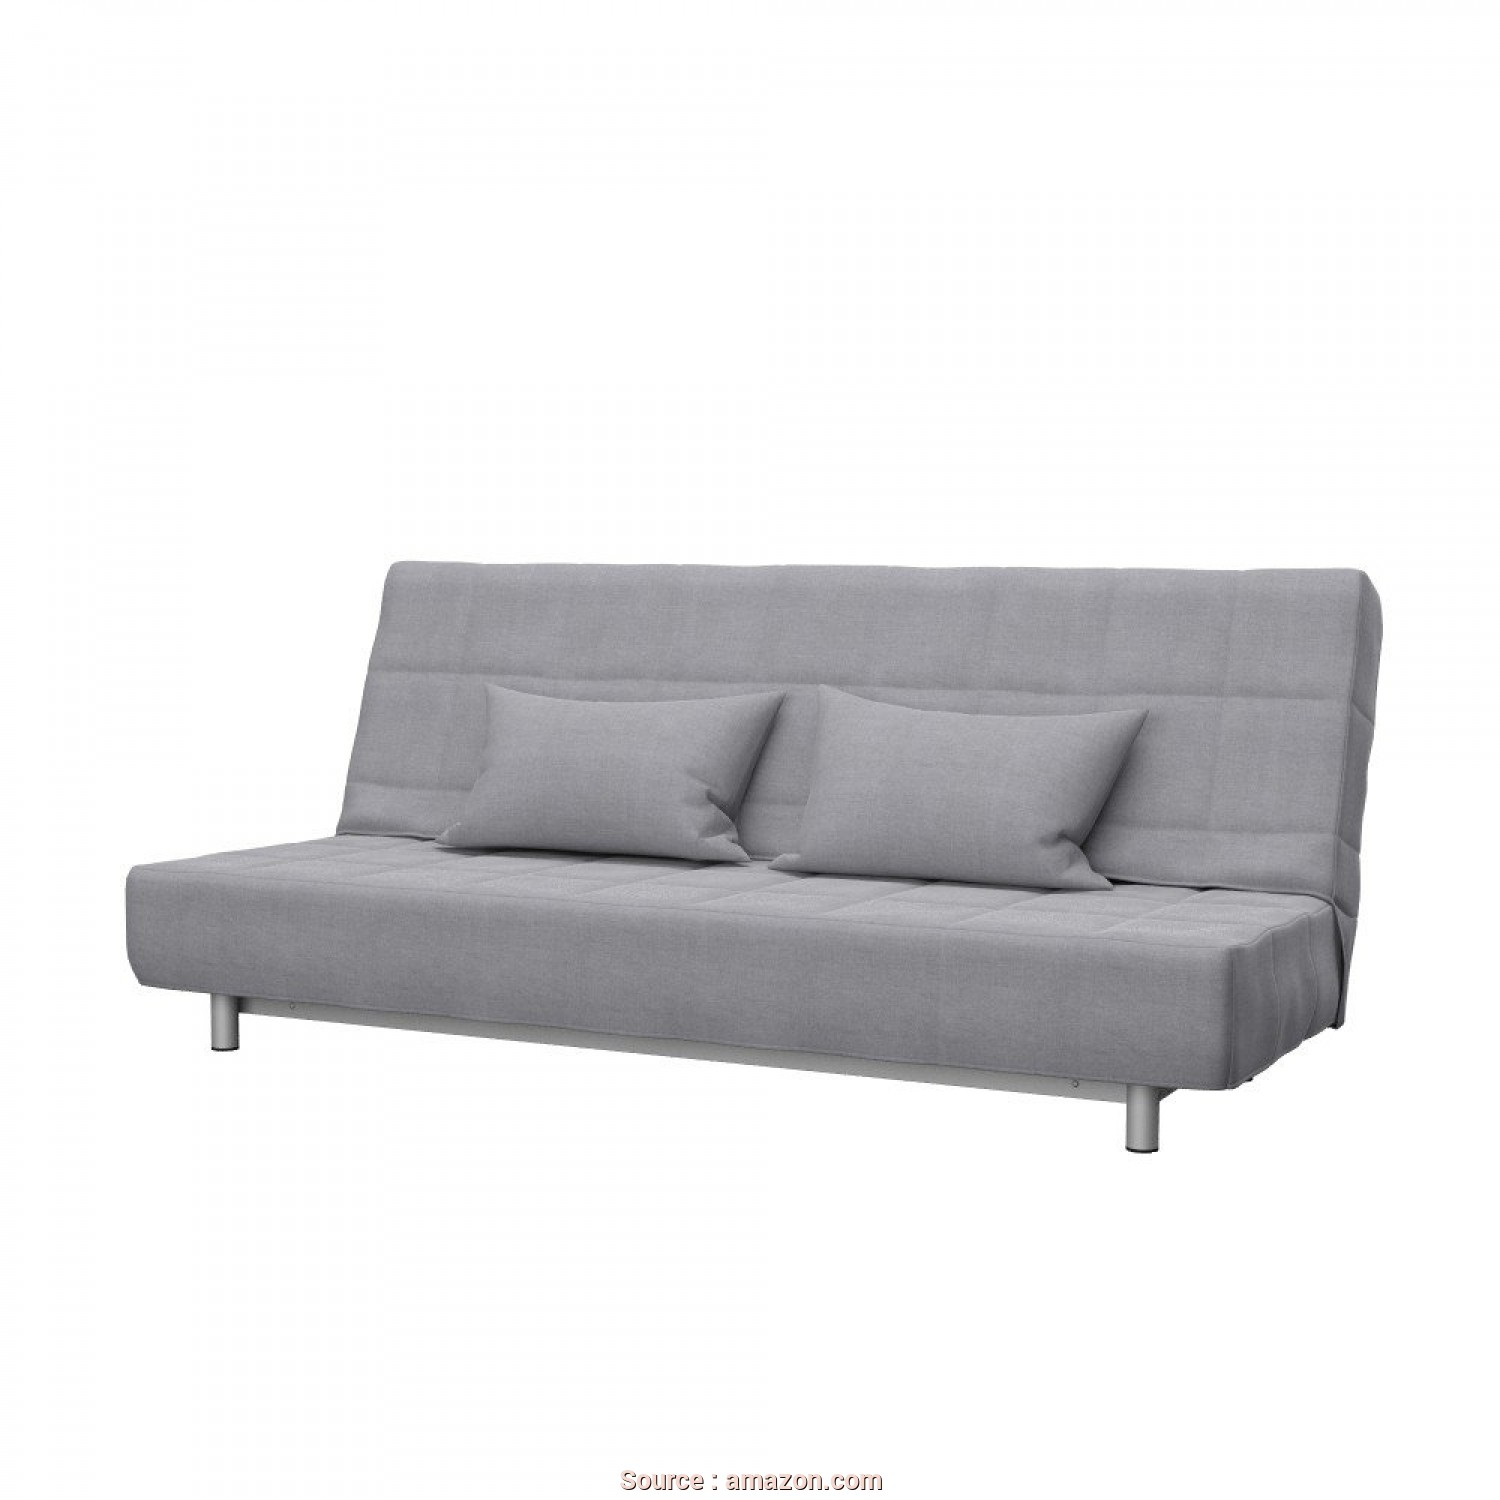 Ikea Beddinge 3 Seater Sofa Bed, Modesto Amazon.Com: Soferia, Replacement Cover, IKEA BEDDINGE 3-Seat Sofa-Bed, Elegance Light Grey: Home & Kitchen